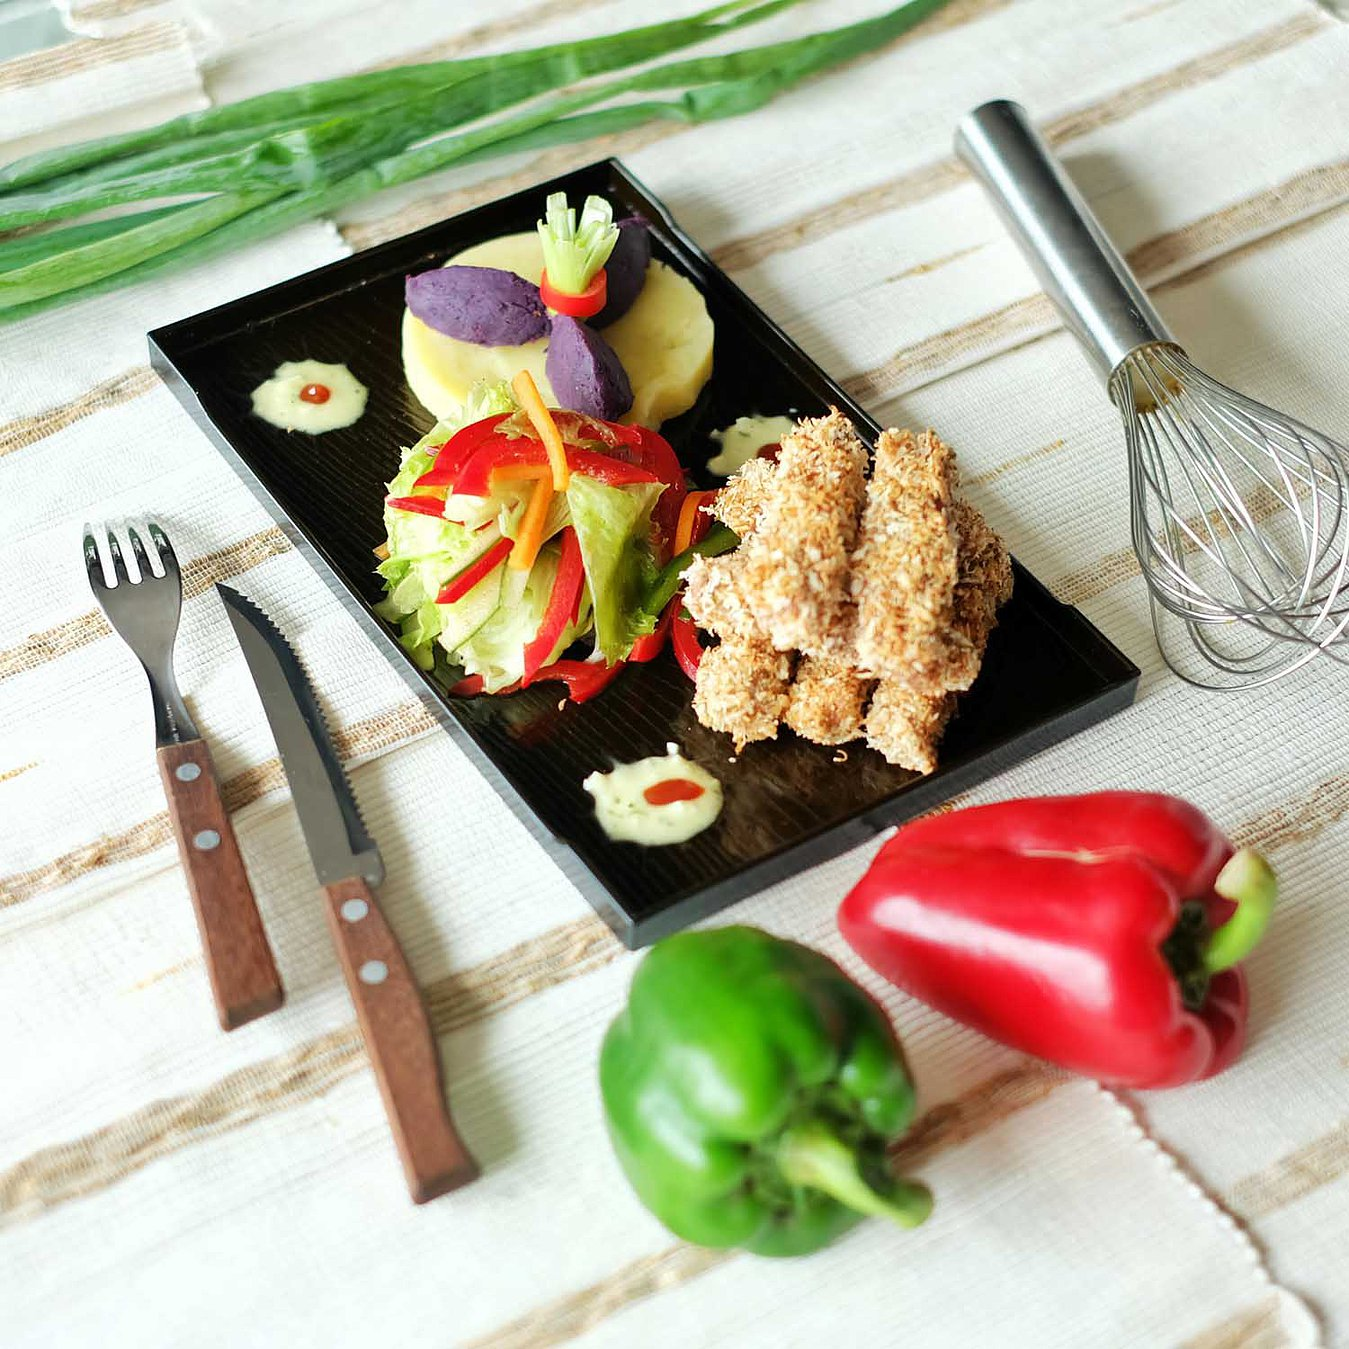 Delivery Healthy Food Jakarta